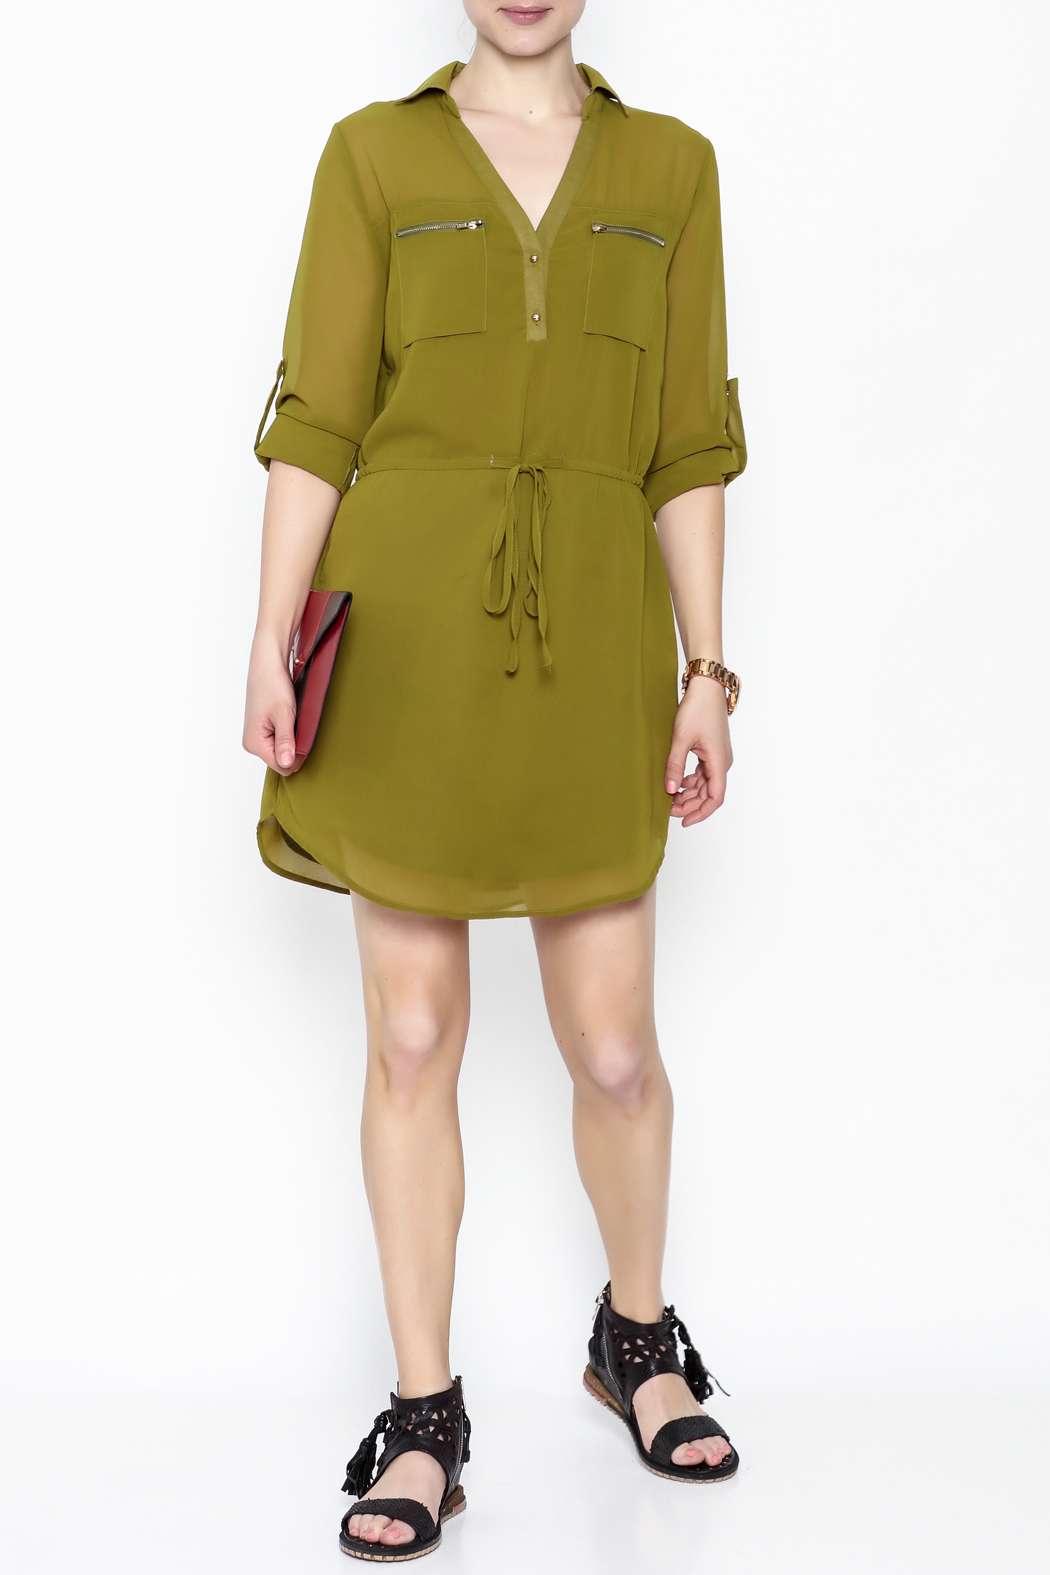 Pure Hype Green Tunic Dress - Side Cropped Image